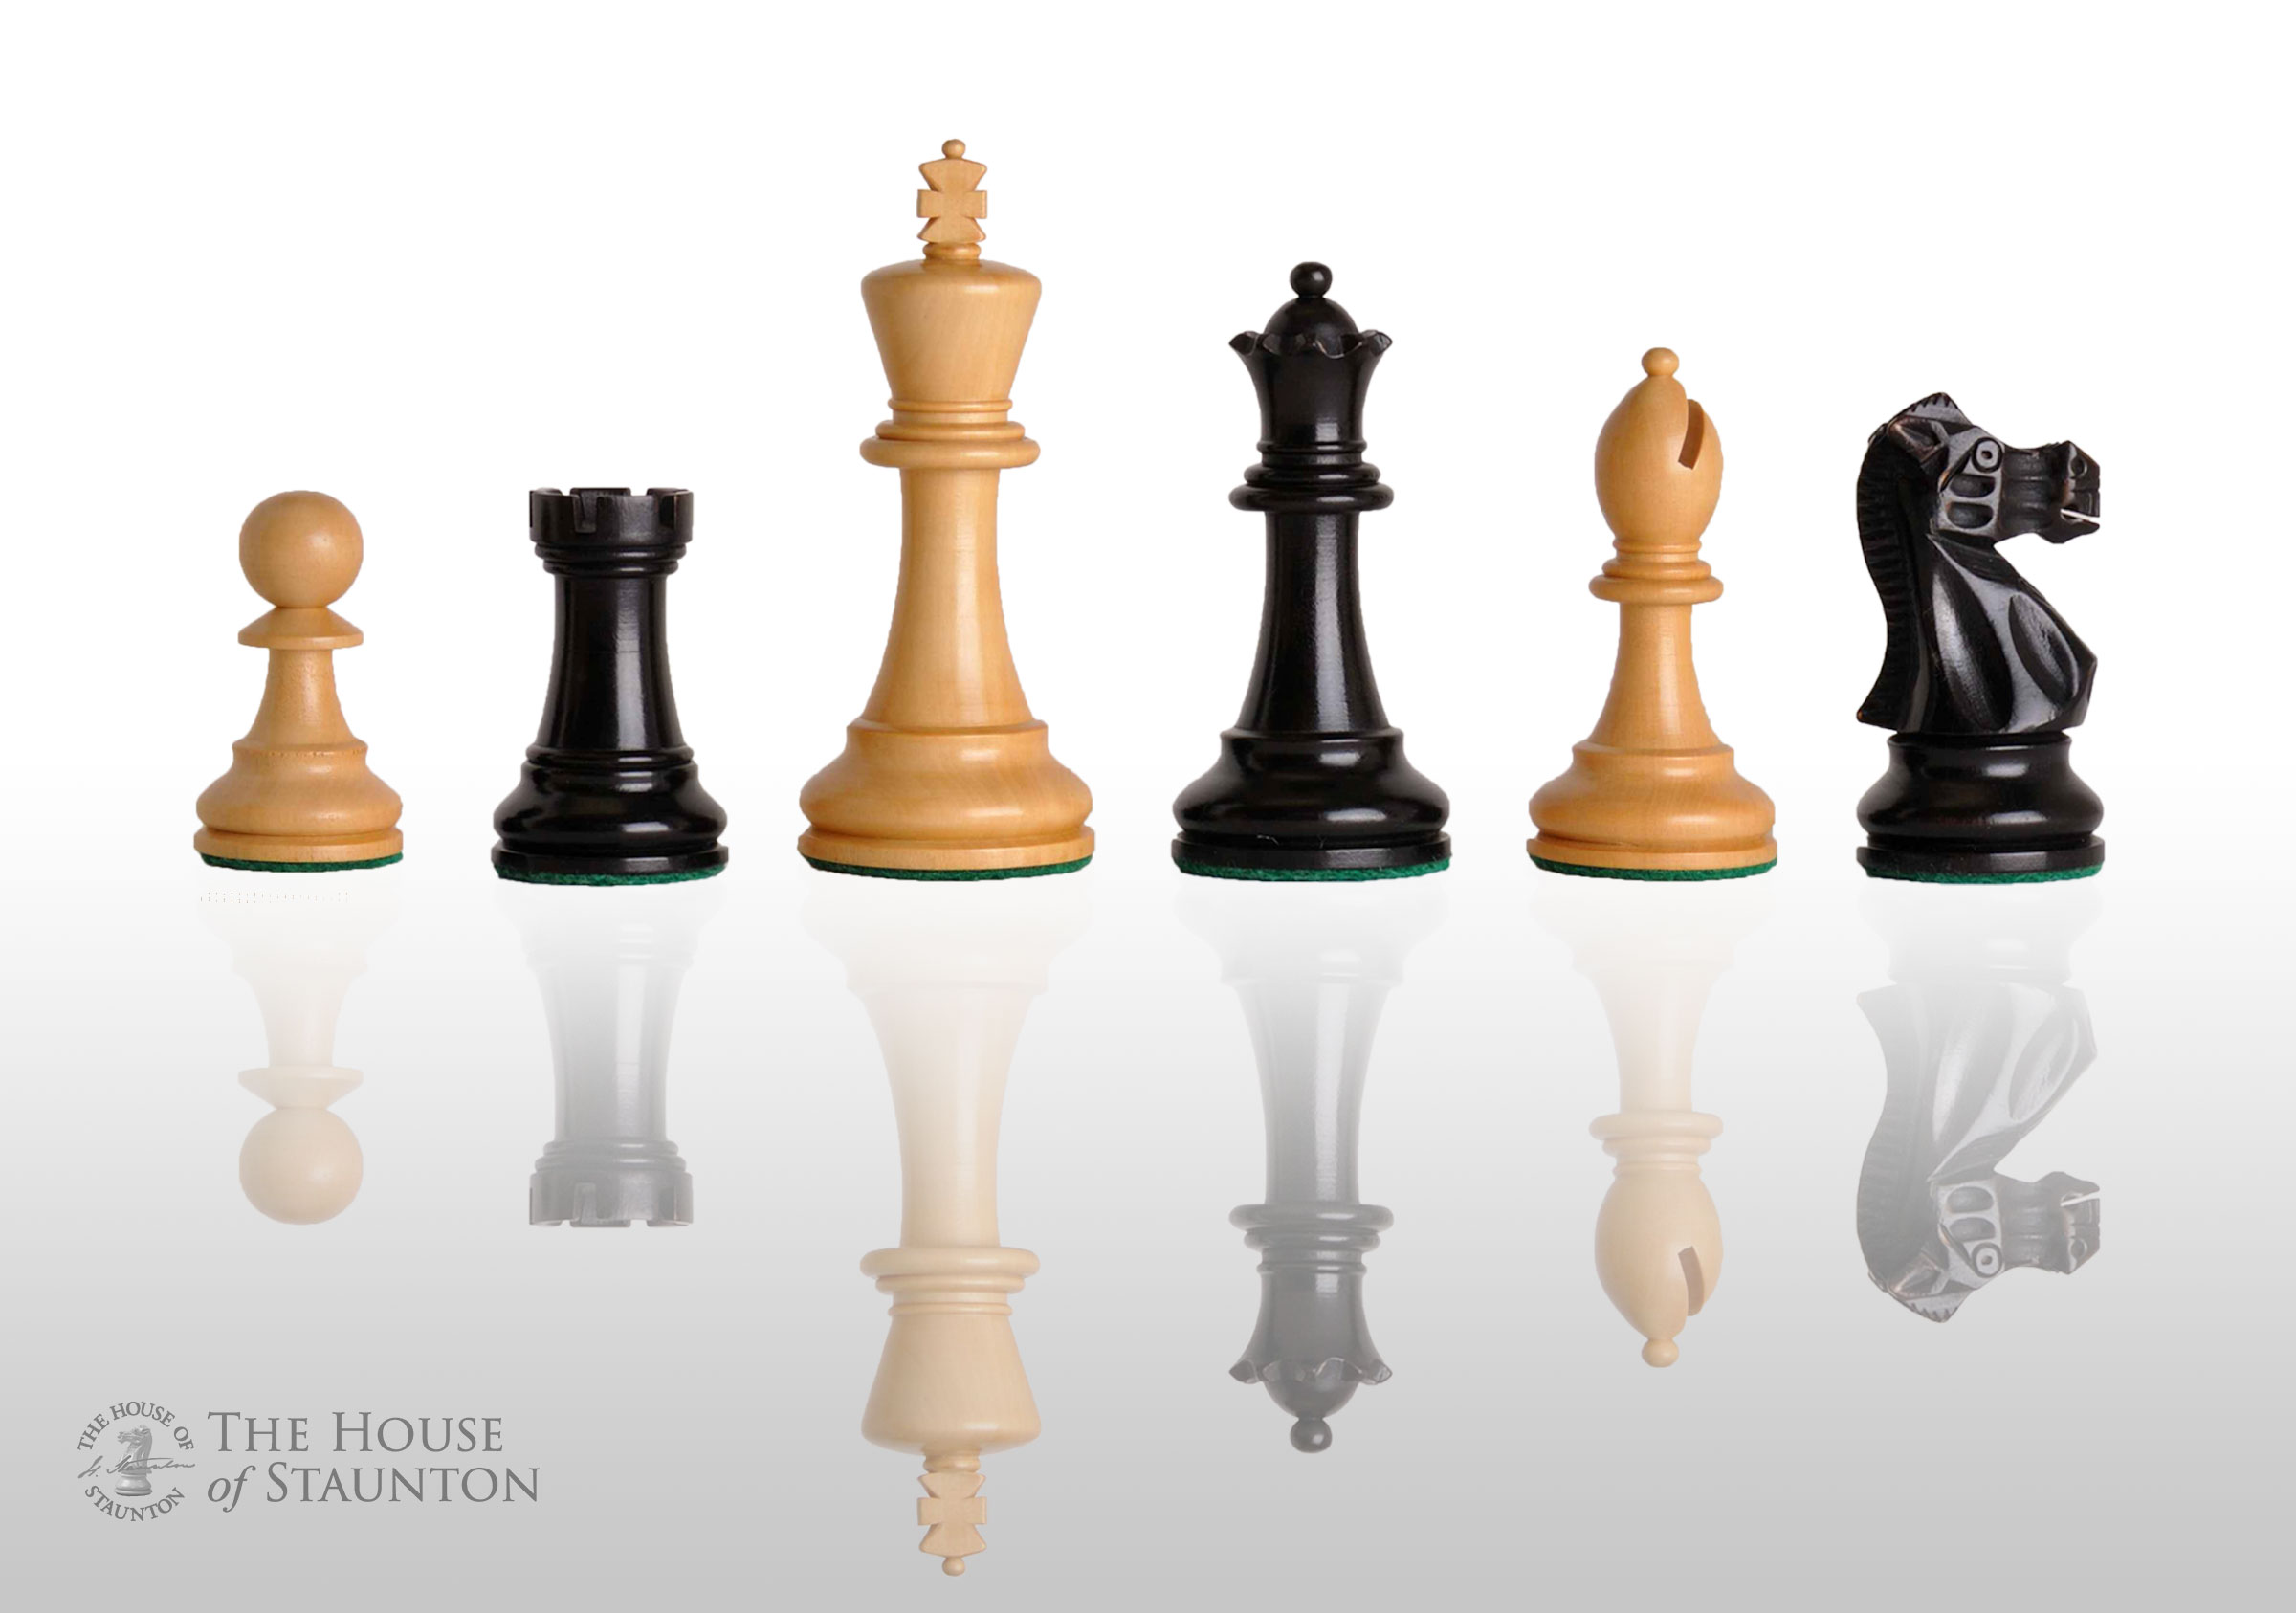 USCF Sales The Wild Knight Chess Set - Pieces Only - 4.4  King - Ebonized Boxwoo